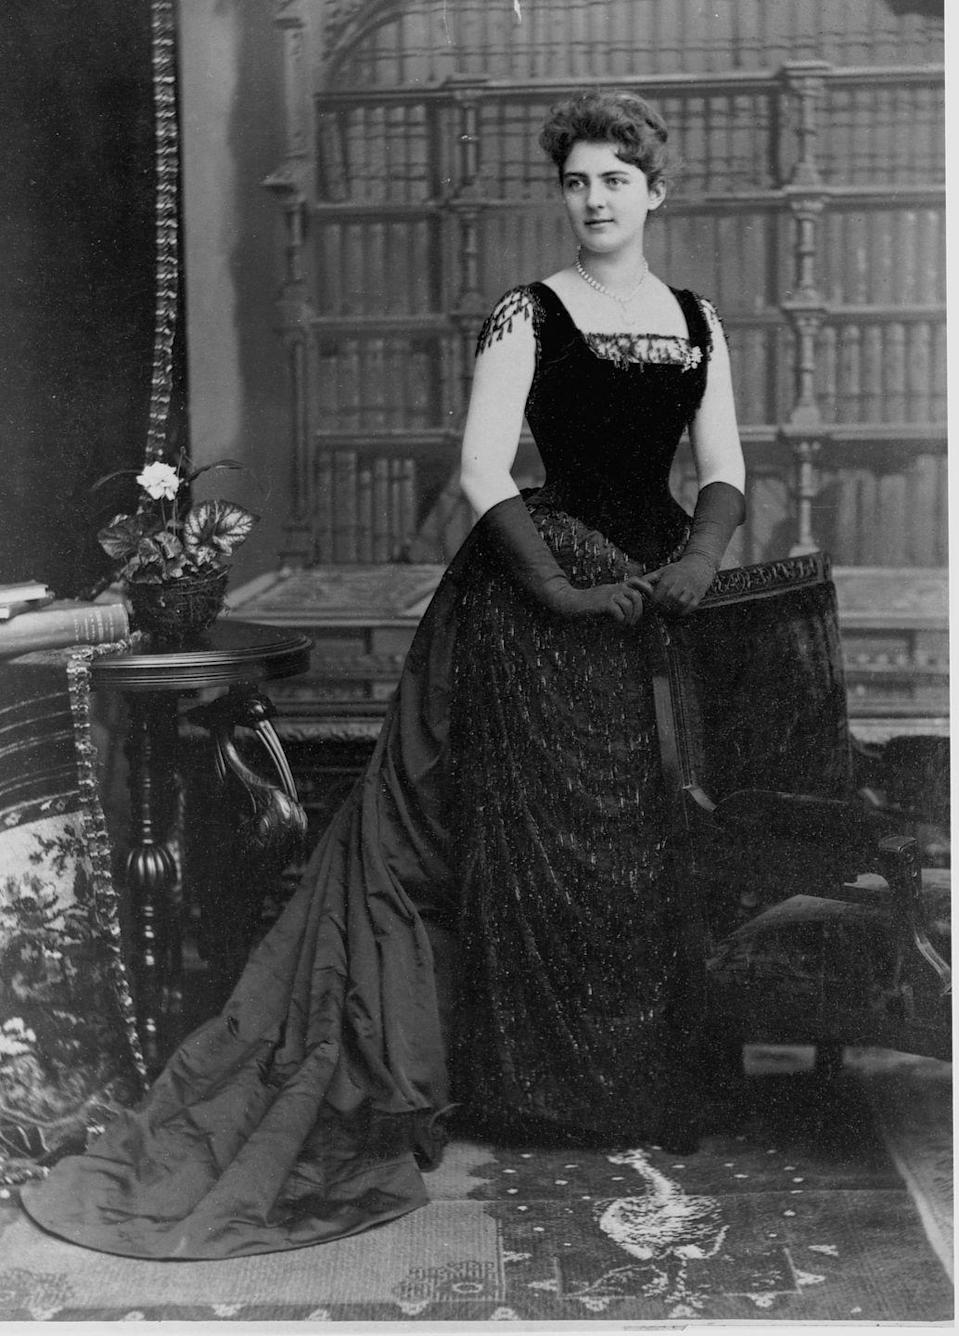 "<p>Younger than most first ladies (she took on the role at age 21), Frances Folsom Cleveland liked to wear dresses that showed off her bare neck, shoulders, and arms. According to <a href=""https://style.time.com/2013/02/18/our-fair-ladies-the-14-most-fashionable-first-ladies/slide/frances-cleveland/"" rel=""nofollow noopener"" target=""_blank"" data-ylk=""slk:Time"" class=""link rapid-noclick-resp""><em>Time</em></a>, the Women's Christian Temperance Union found it so concerning they issued a petition asking her to stop wearing these dresses, but that didn't stop her. </p>"